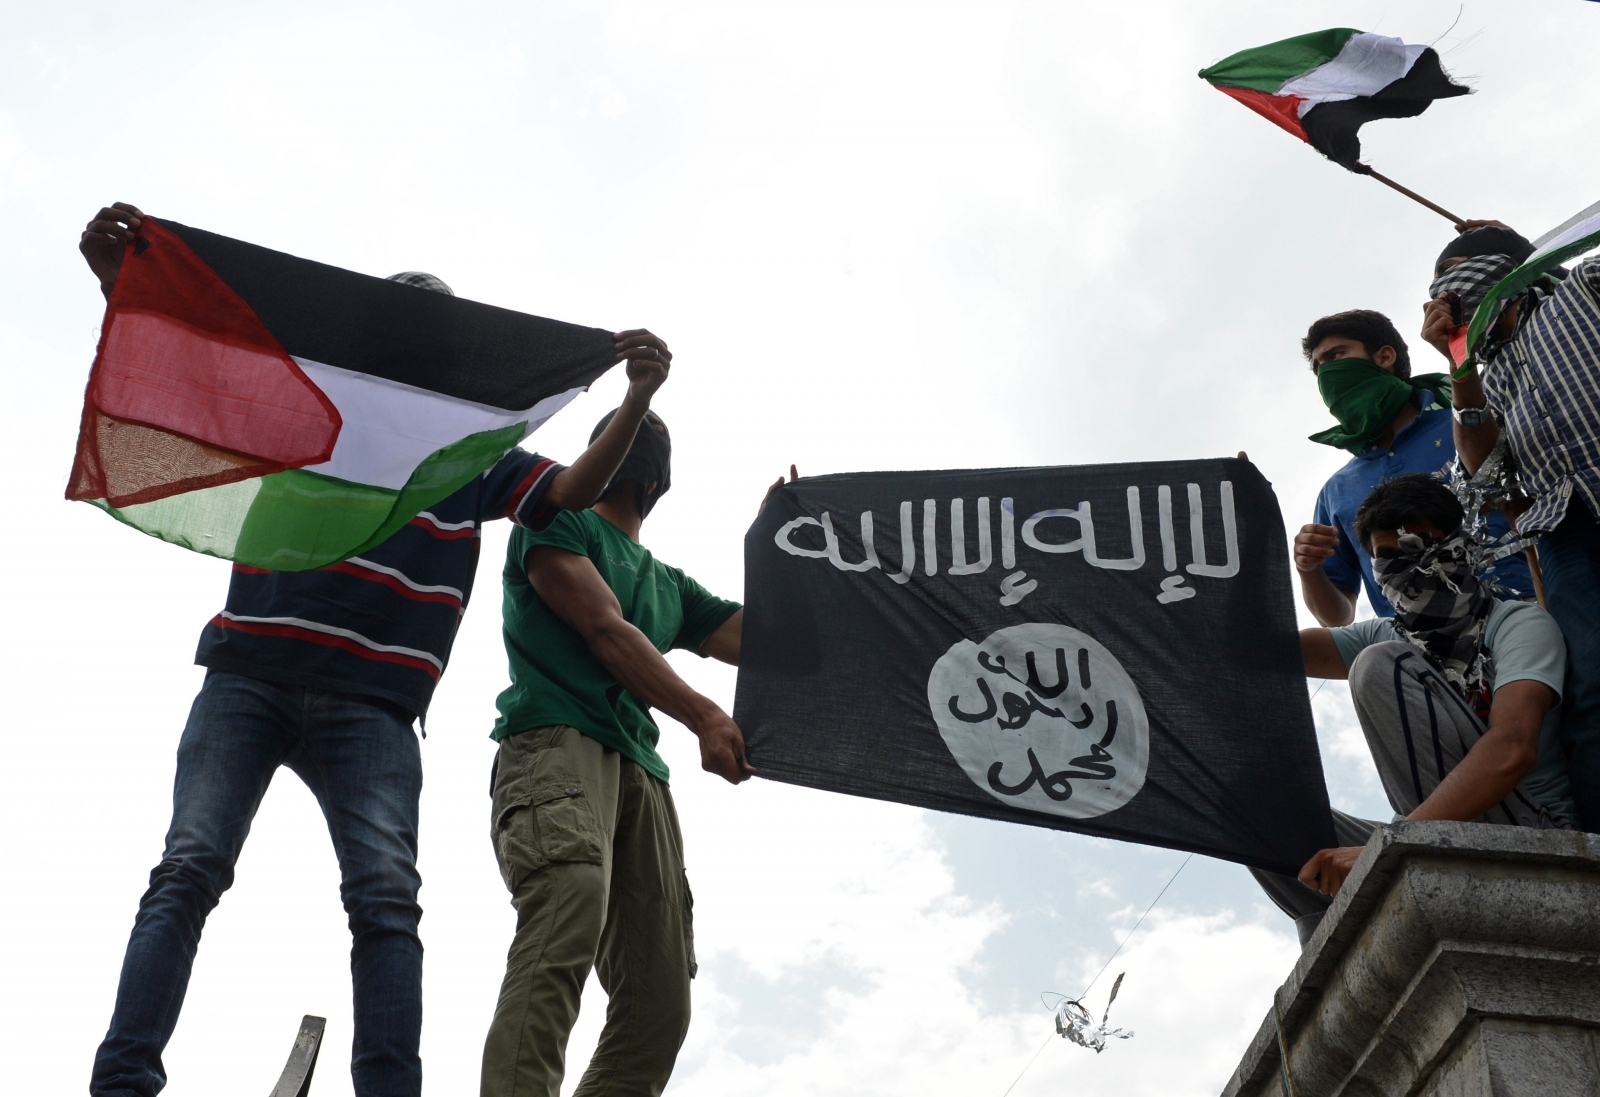 demonstrators-kashmir-hold-aloft-isis-palestine-flags-protest-against-israeli-bombings-west